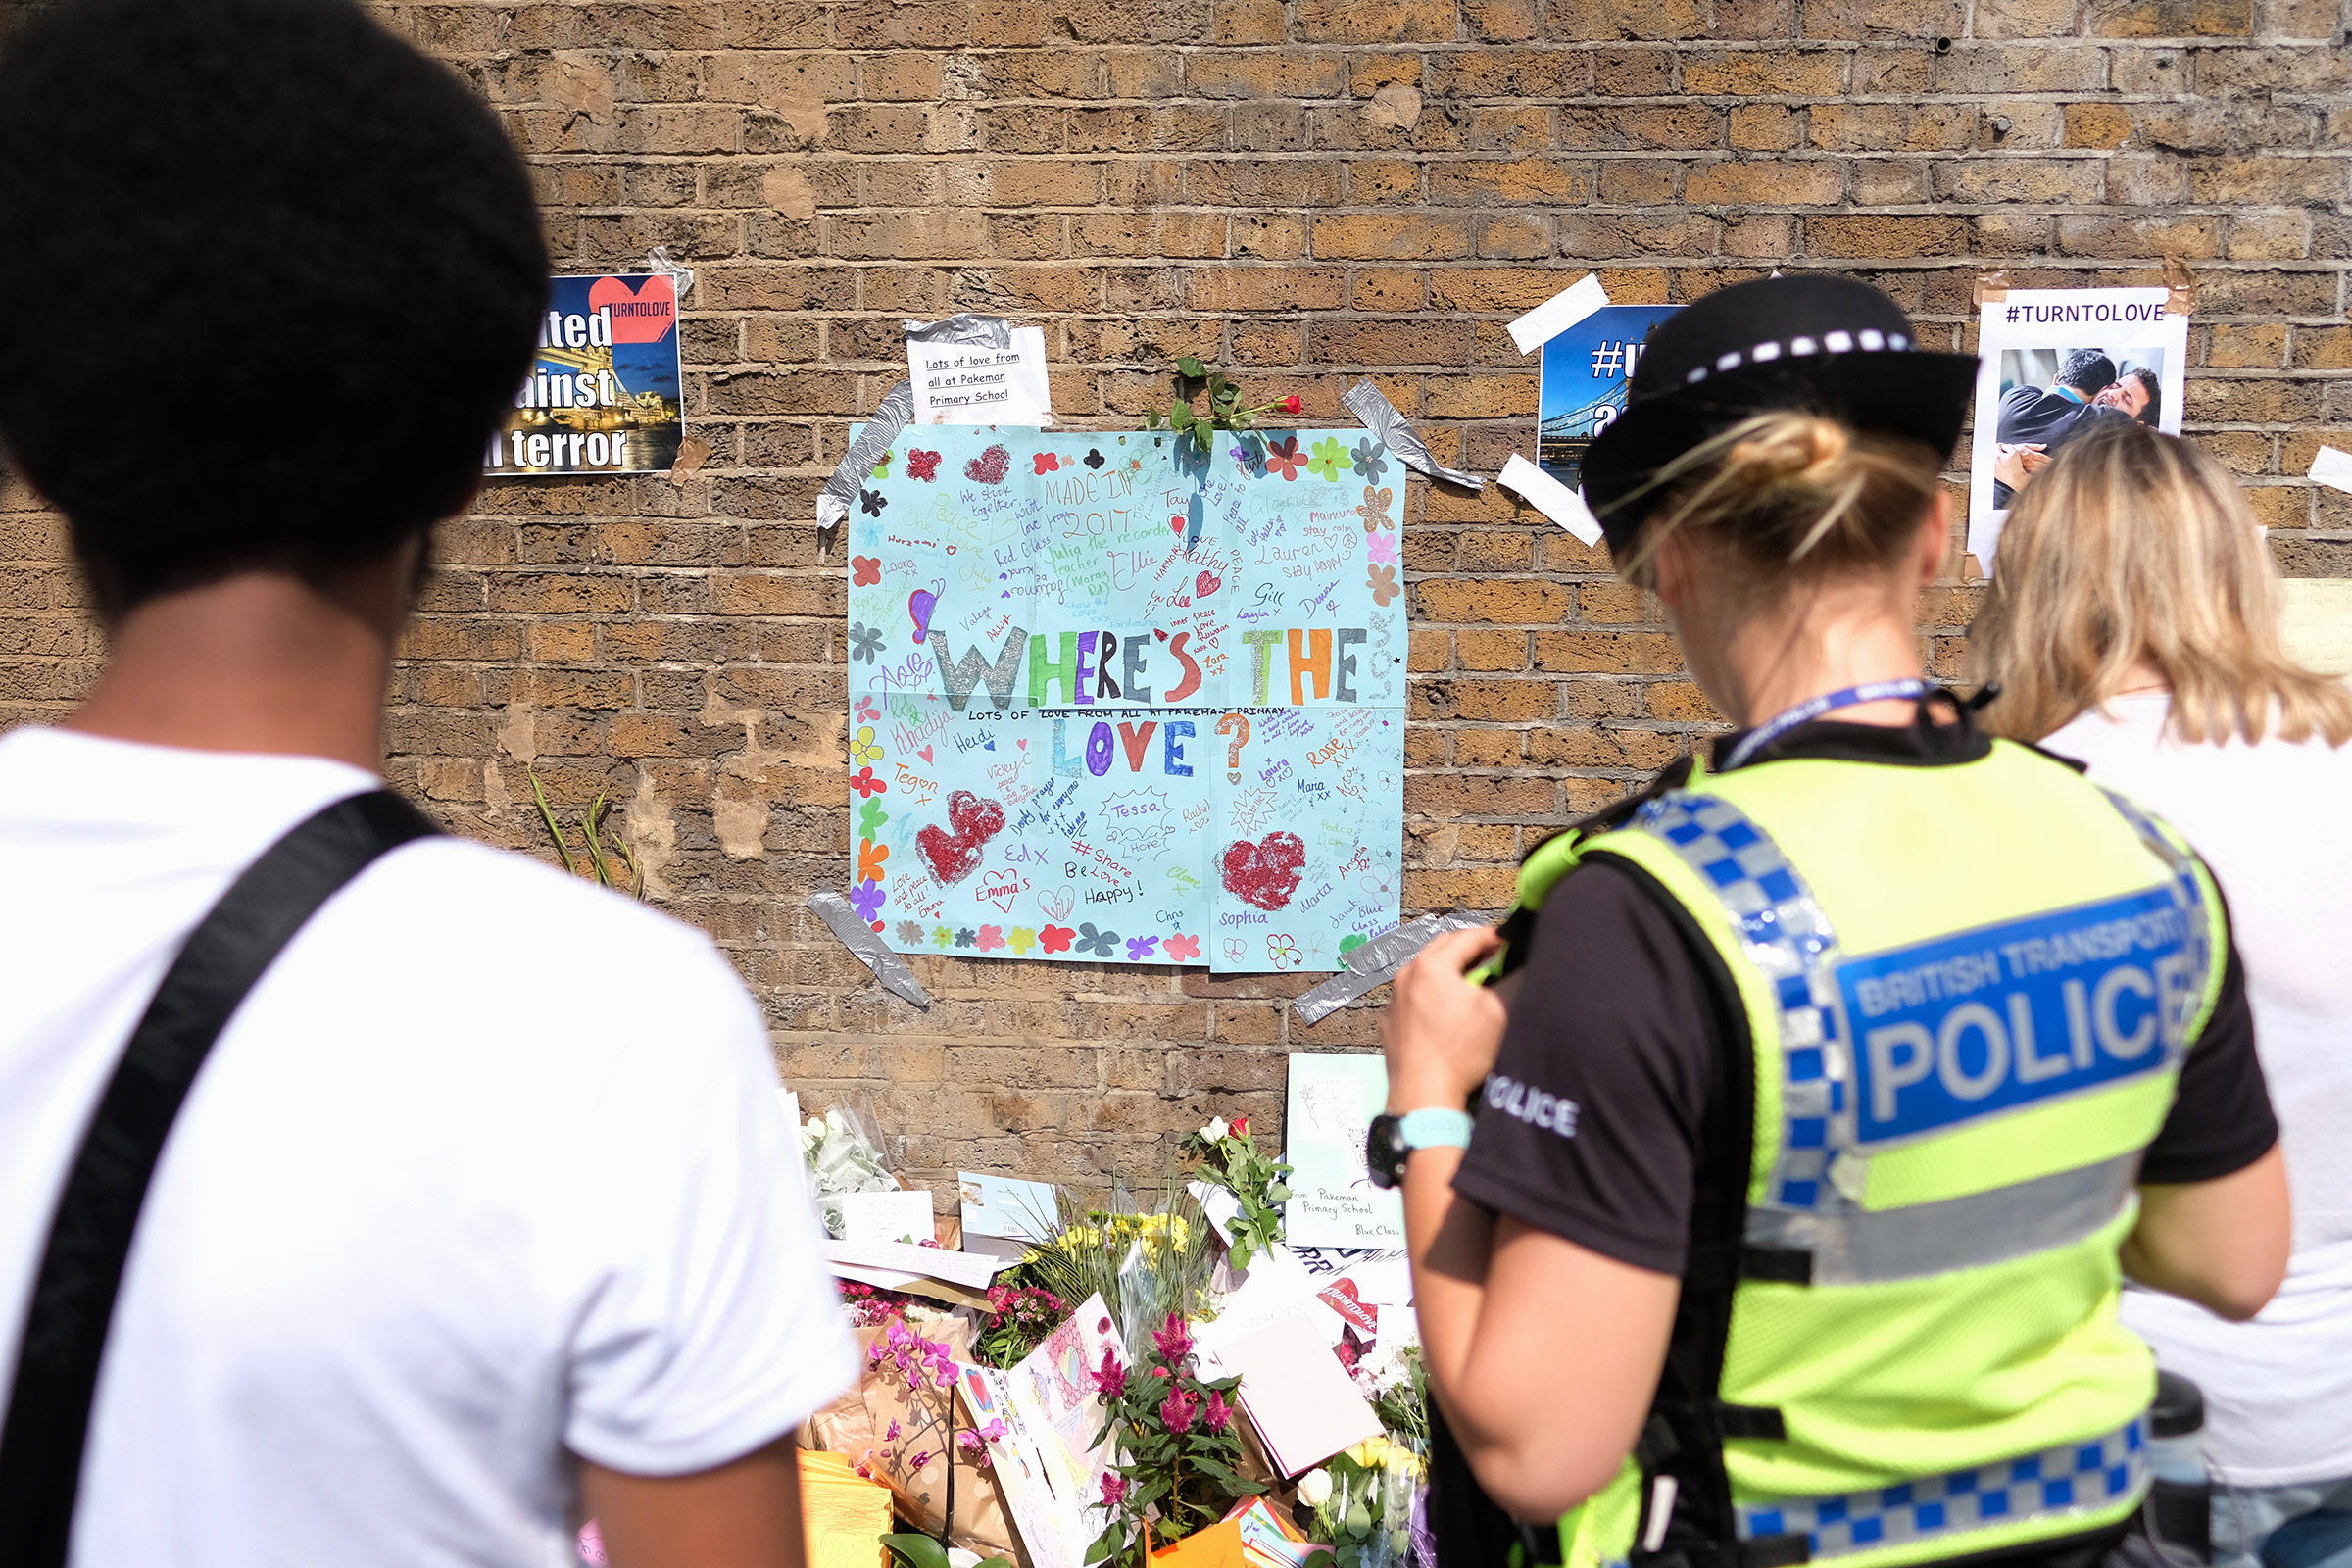 People stop to read some of the messages of support and love for the Muslim community near Finsbury Mosque on June 20, 2017 in London. A man was held on suspicion of attempted murder and alleged terror offenses after a group of Muslims were hit by a van in Finsbury Park.